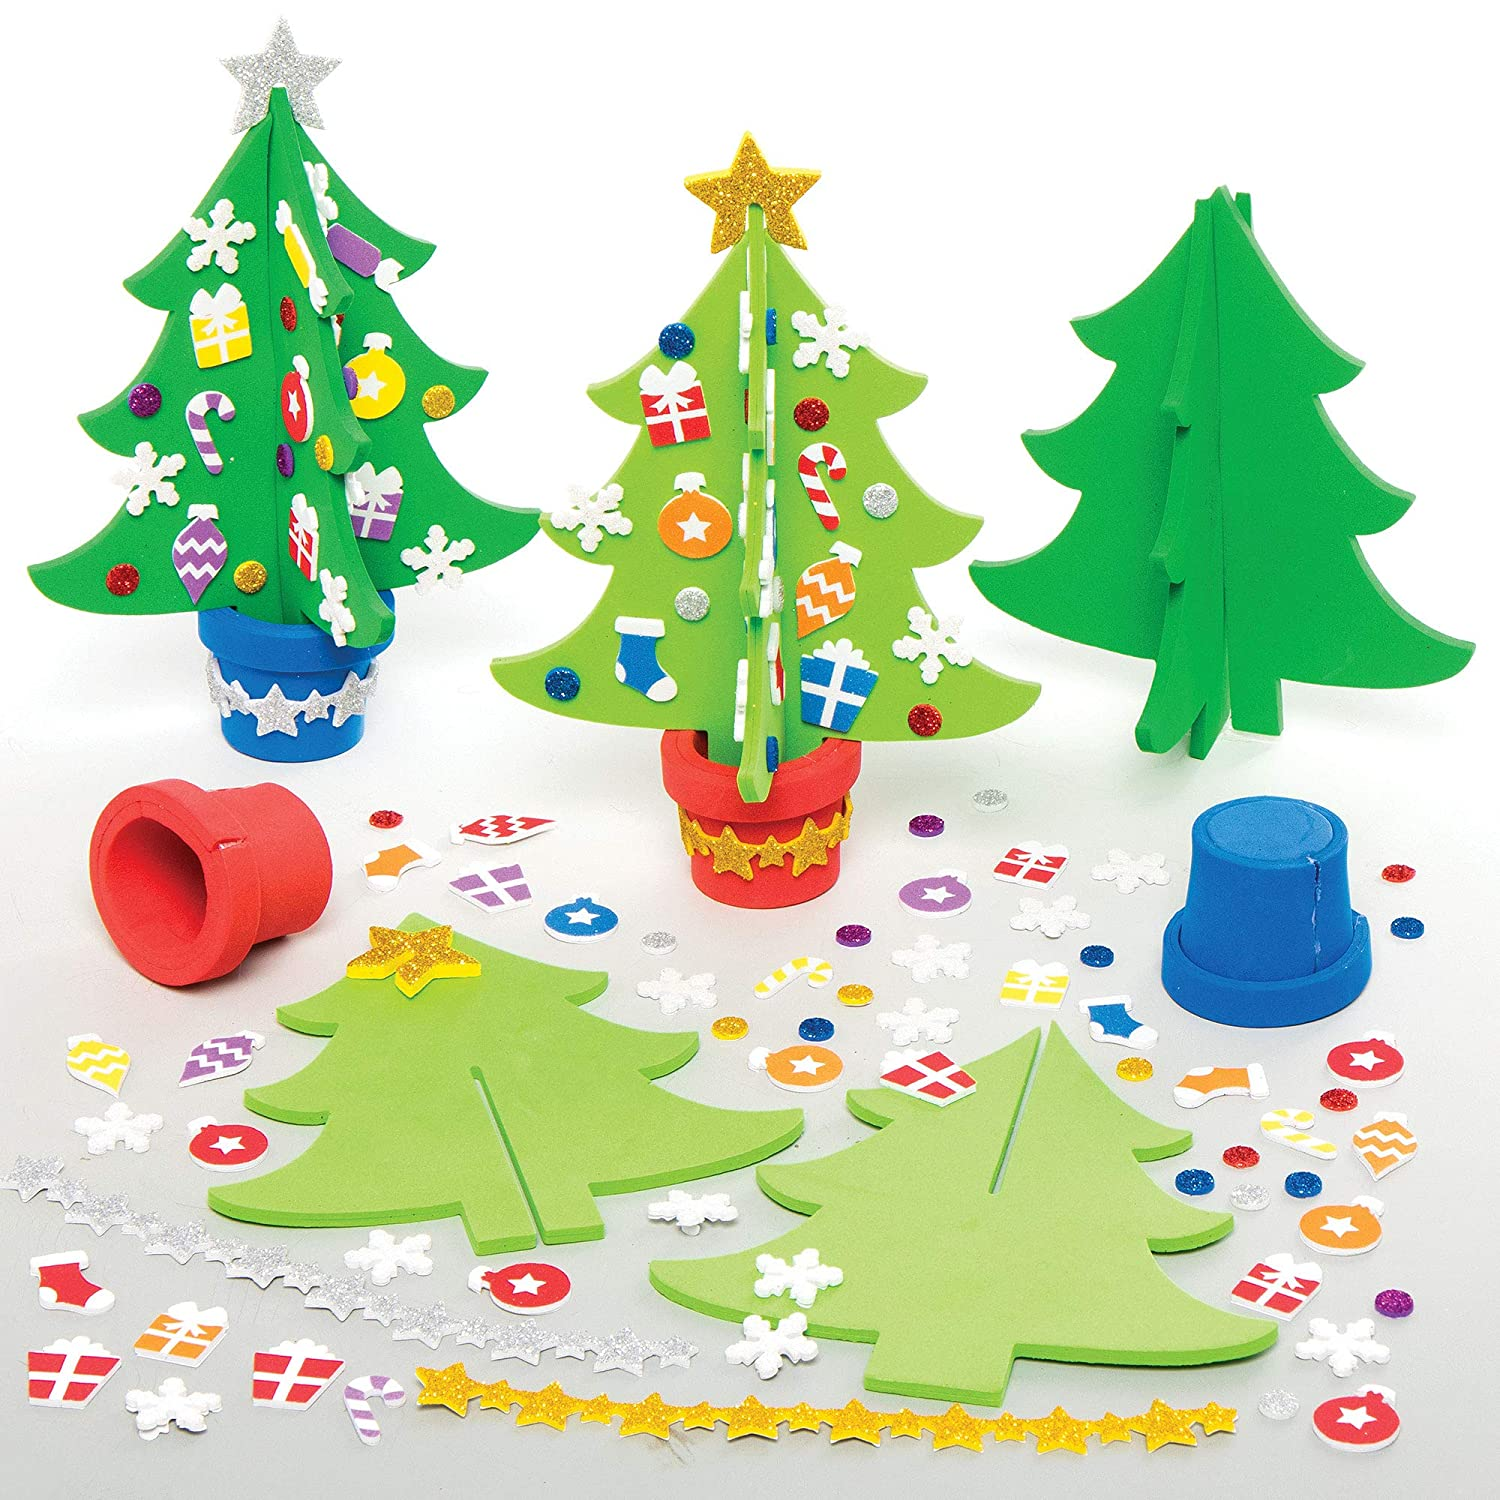 Baker Max 58% OFF Ross AX427 Christmas Tree Craft Max 68% OFF of 4 Pack Kits - Festive